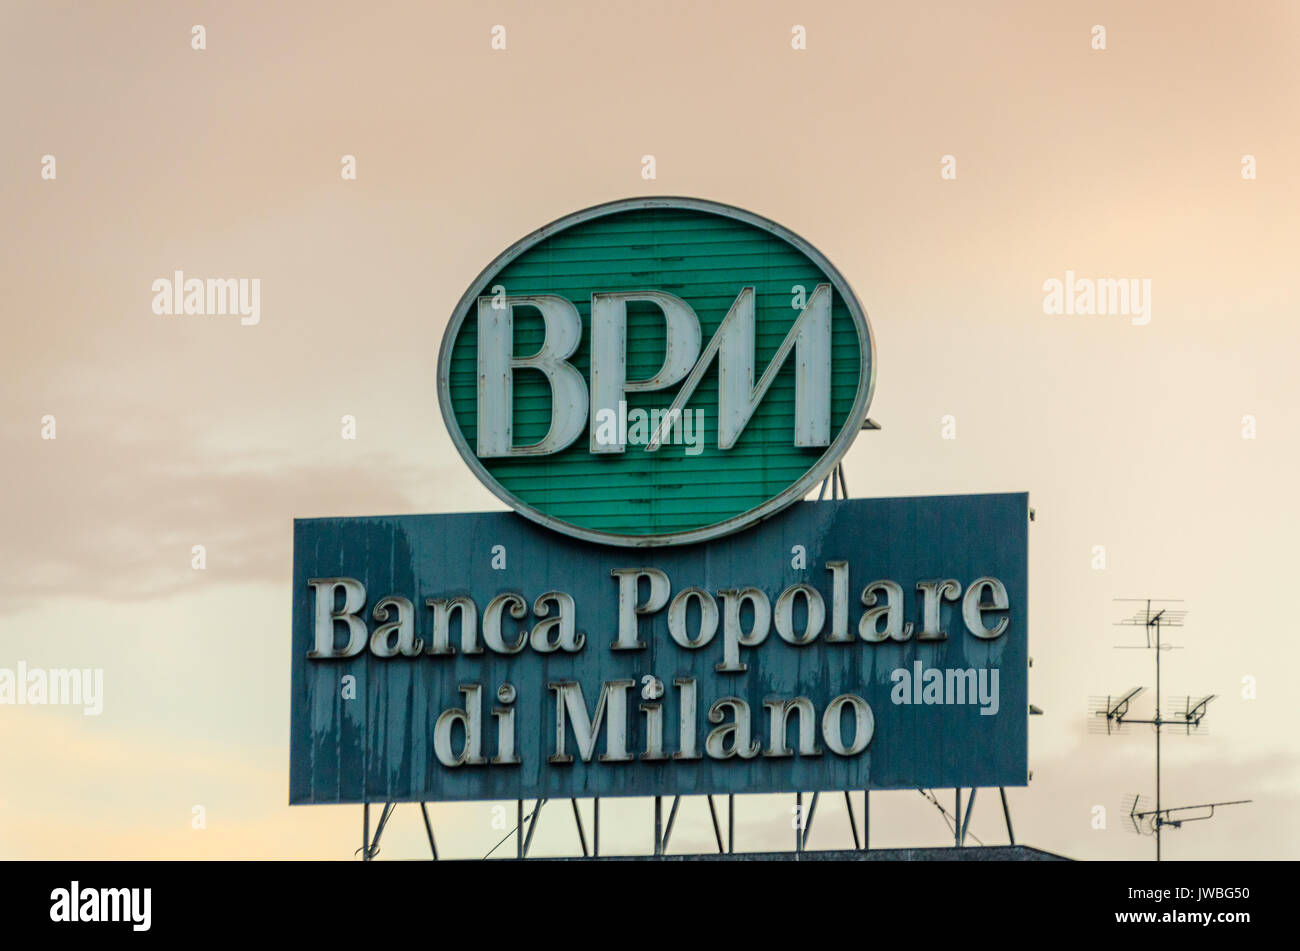 Banca Popolare Di Milano Spa Known As Bipiemme Or Just Bpm Is An